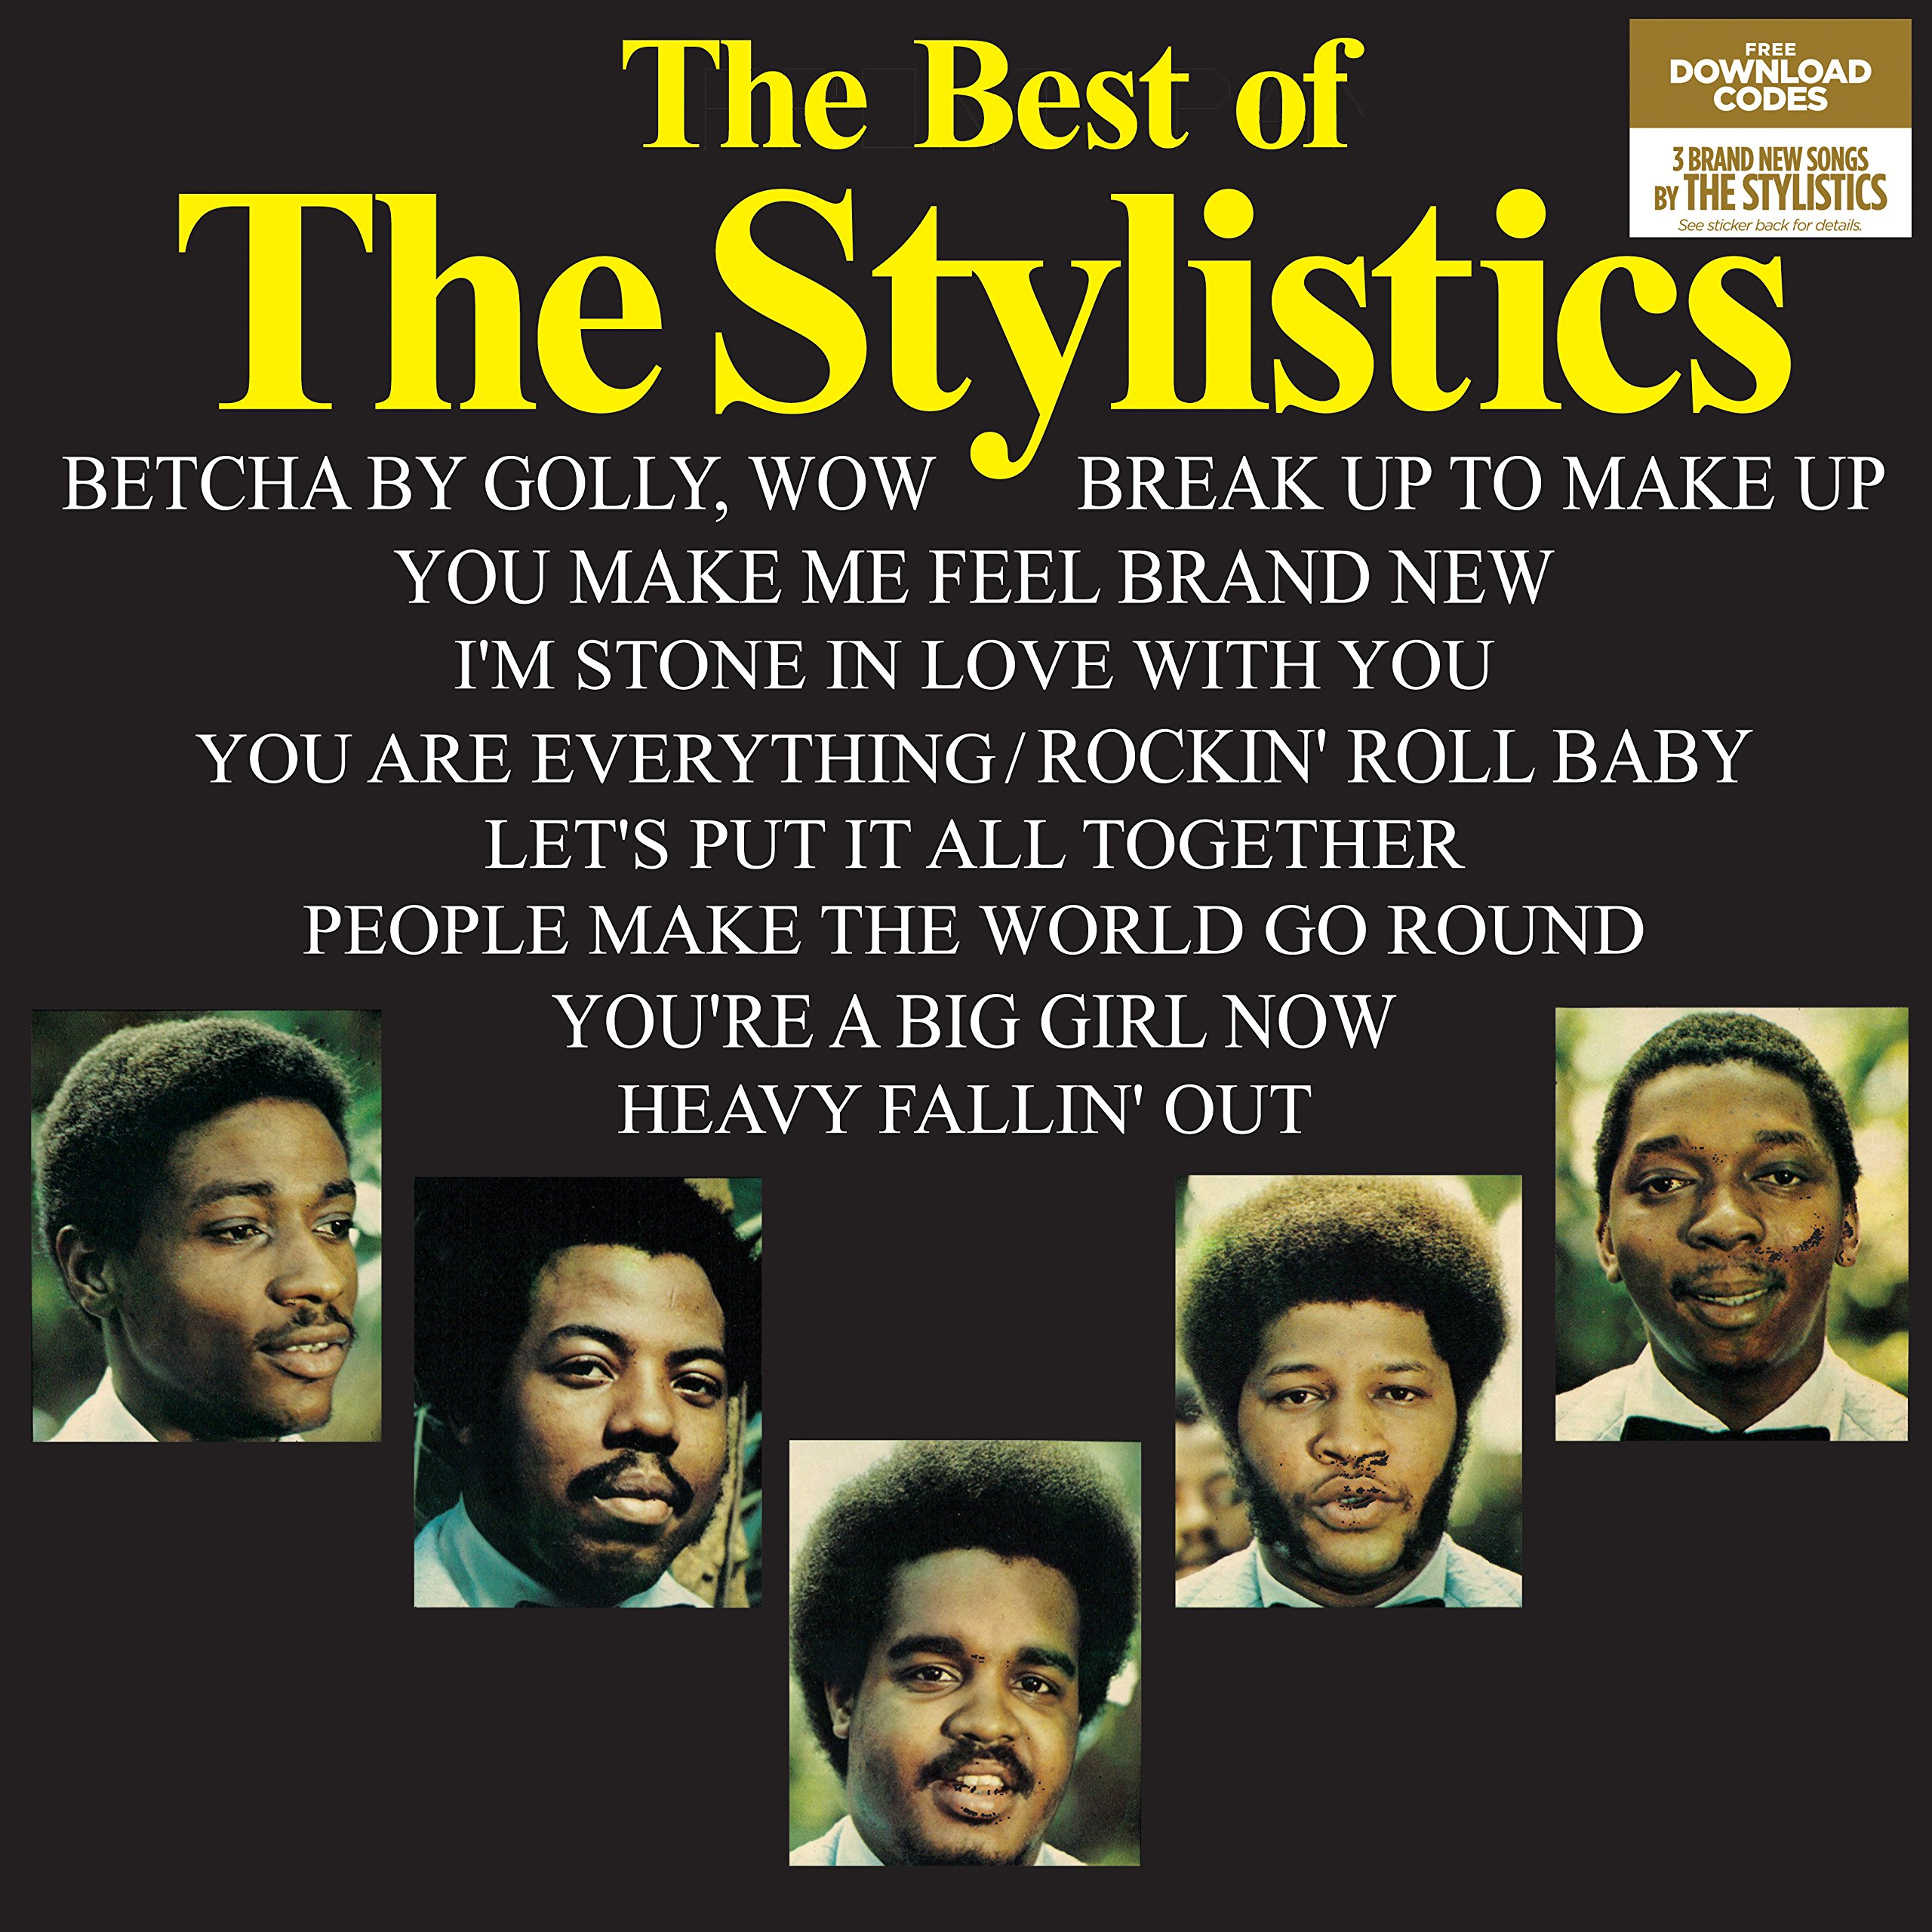 The Best of the Stylistics by Amherst